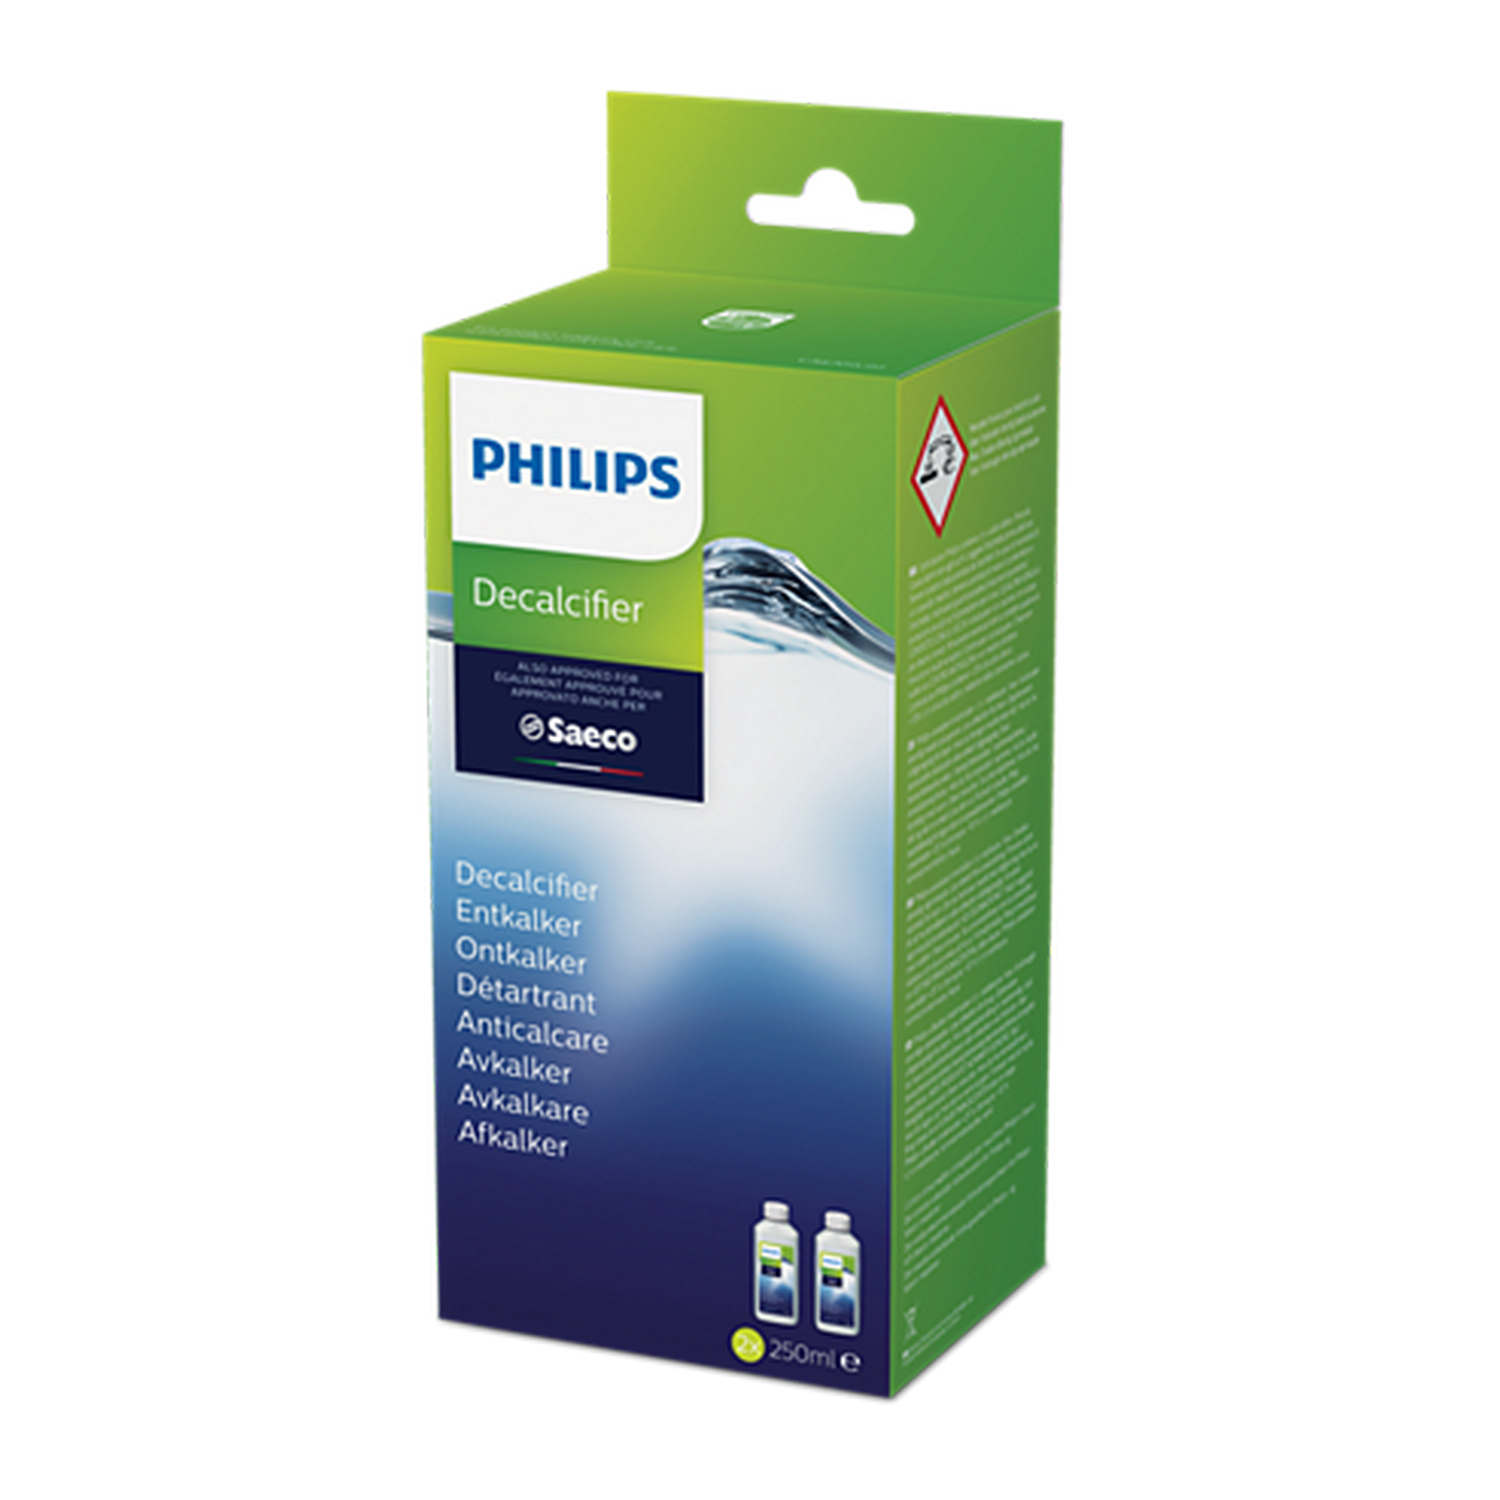 PHILIPS-SAECO Philips CA6700/22 Entkalker 2 x 250 ml FÜR PHILIPS SAECO KAFFEEMASCHINEN